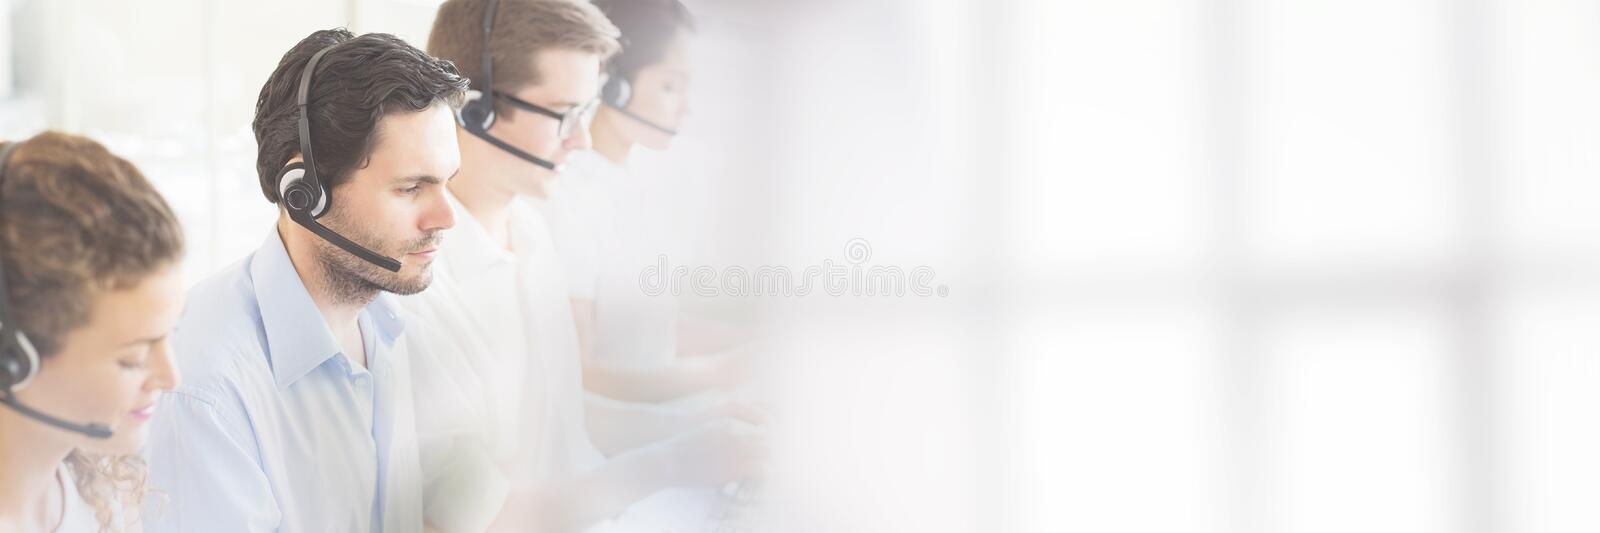 Customer service agents working stock images